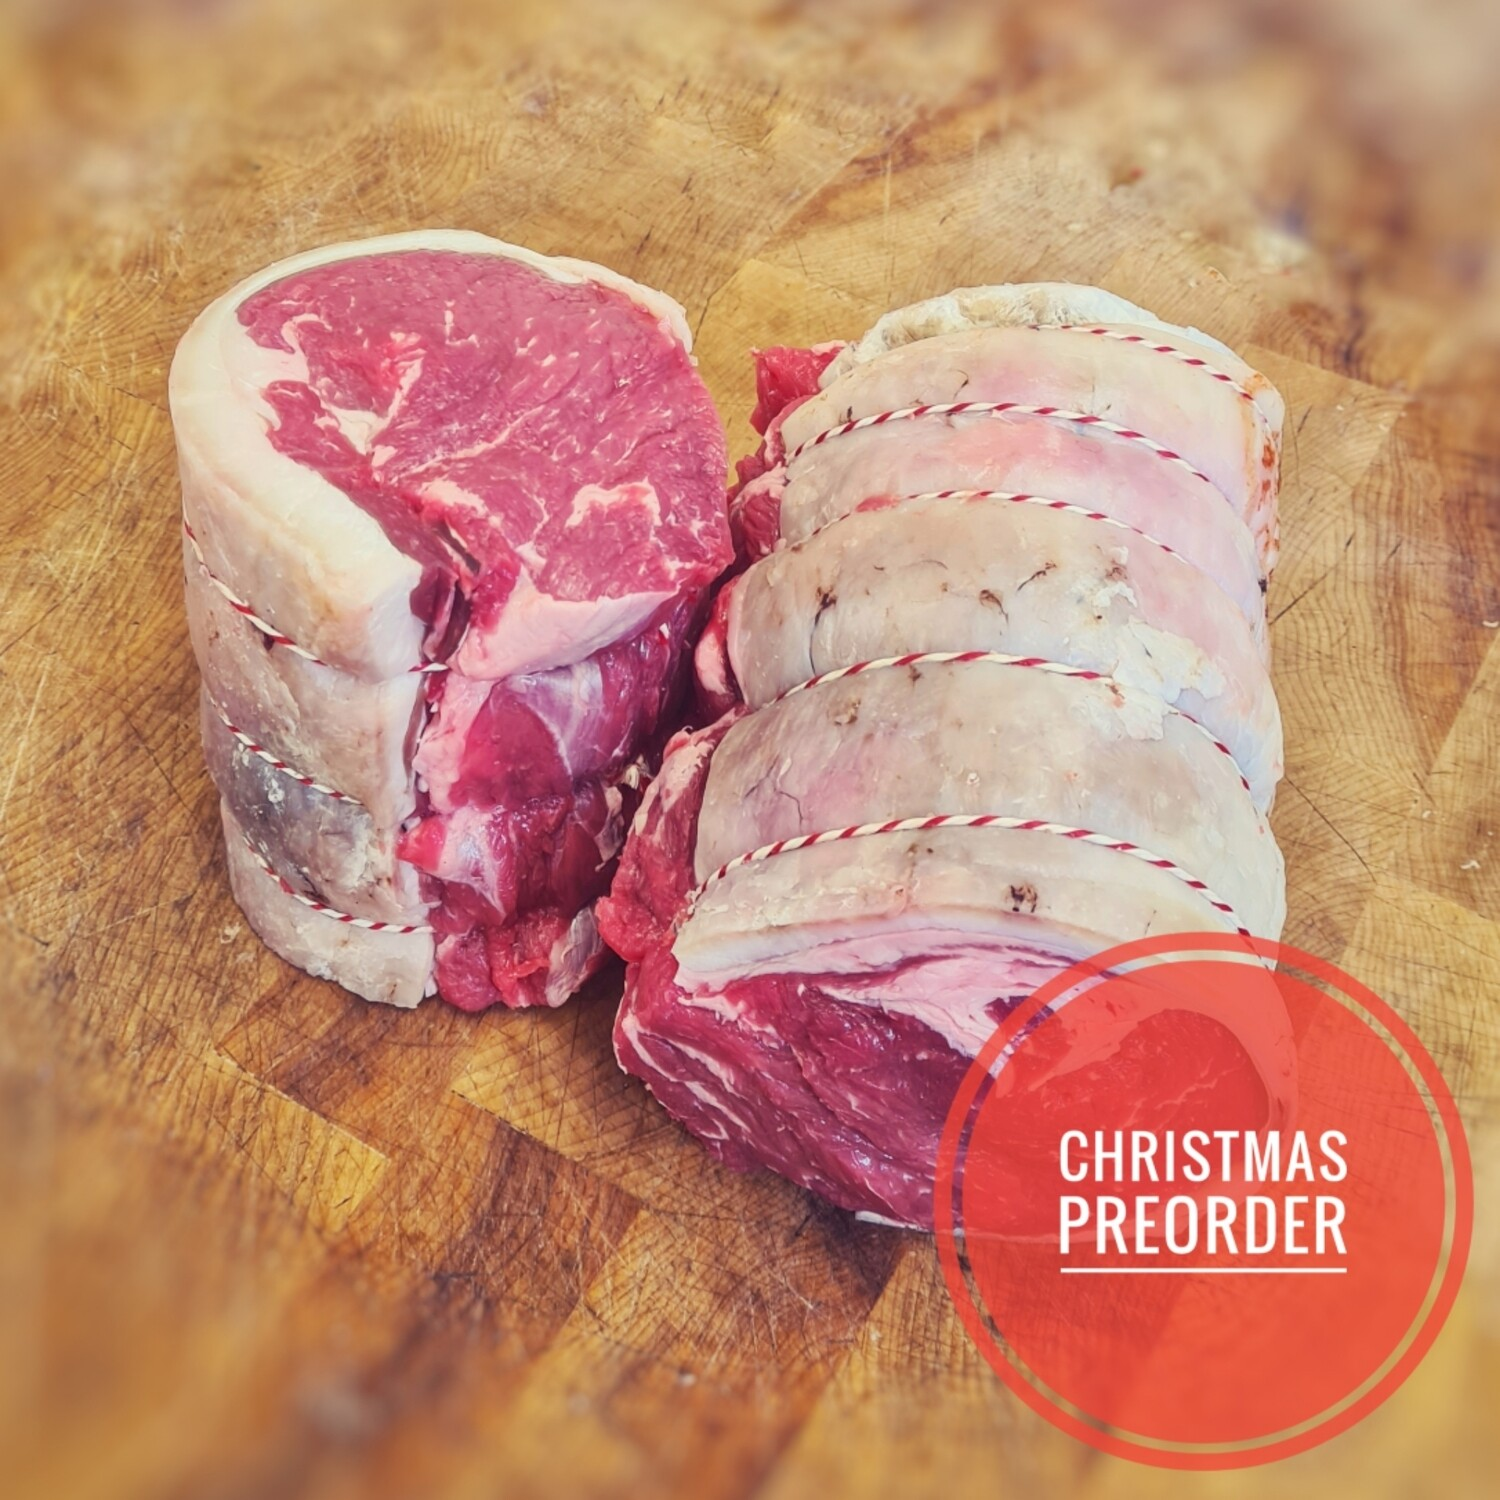 Preorder Dry Aged Rolled Sirloin